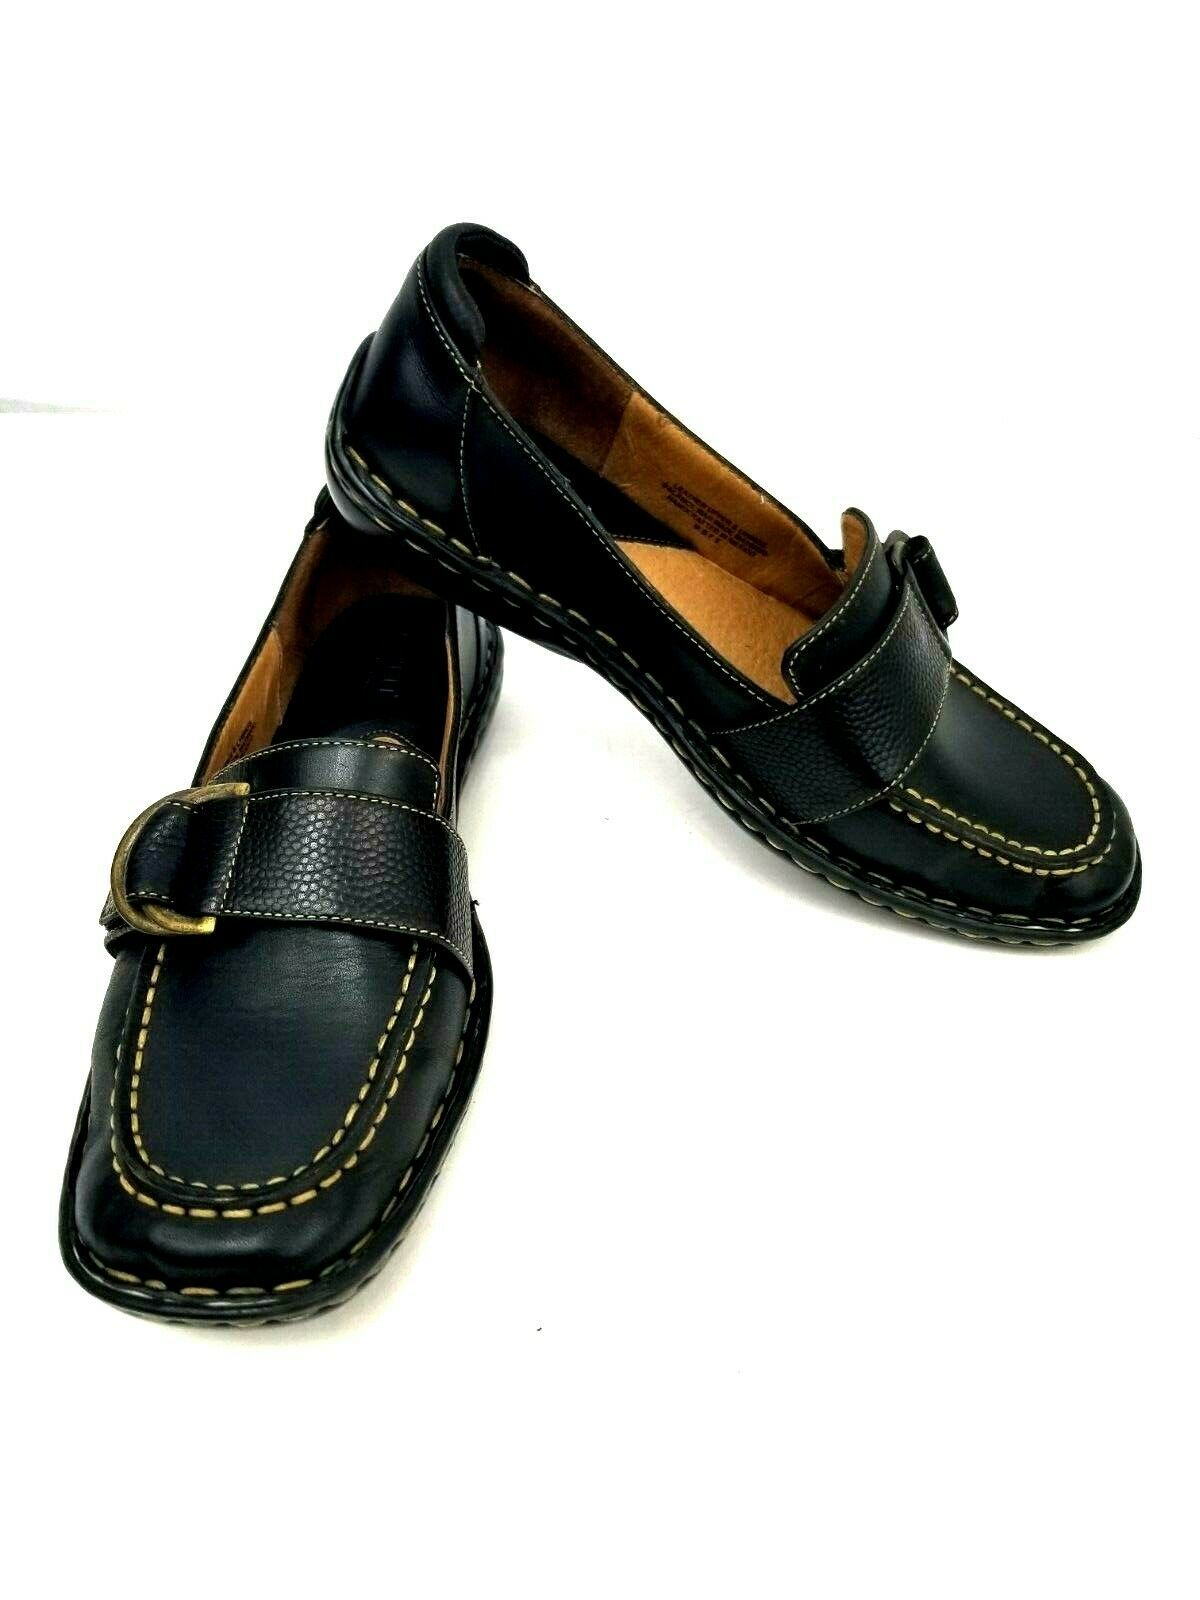 Born W3528 Women's Driving Loafers Brown Size US 8.5M Leather Monk Strap UK 7.5